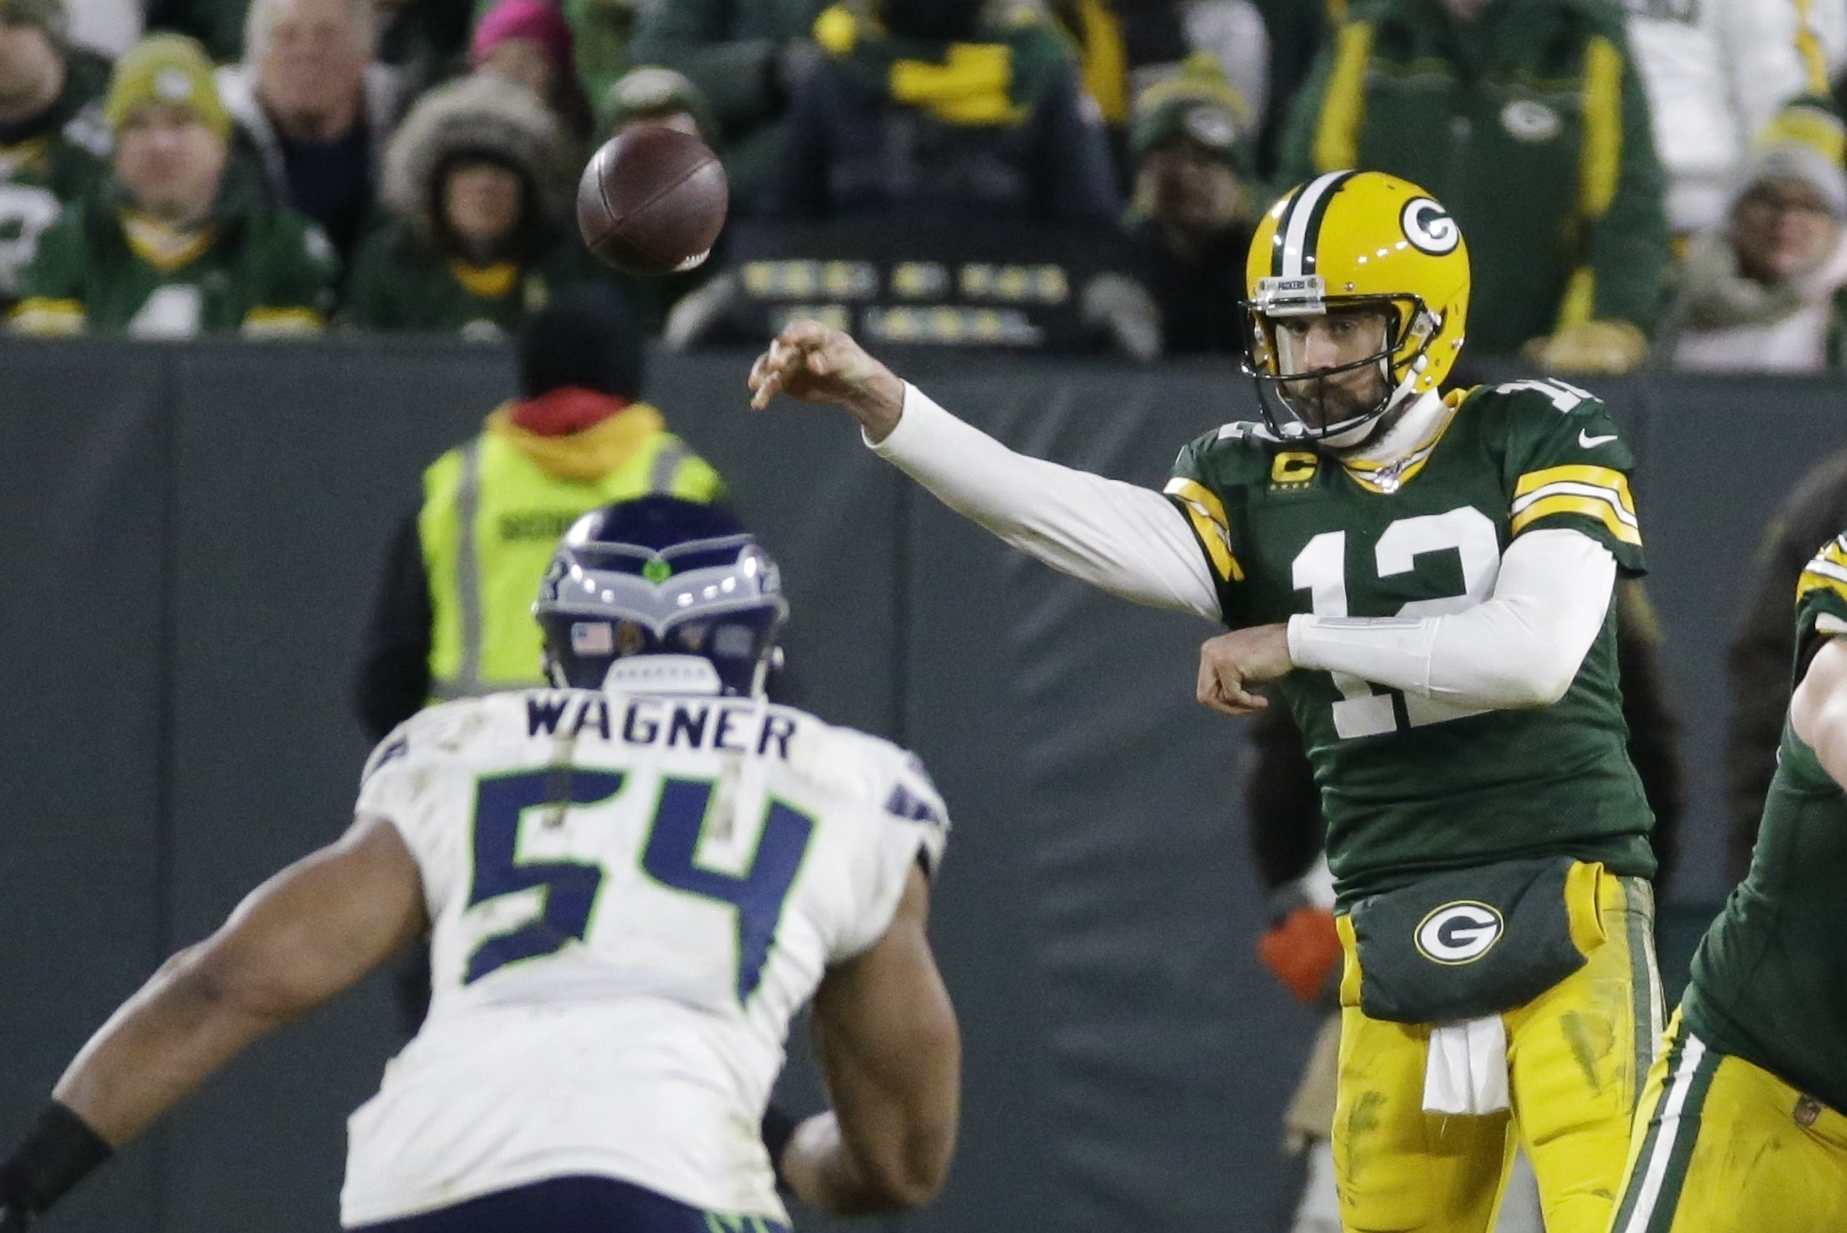 Packers vs. 49ers, NFC Championship (01/19/20): How to watch, live stream, TV channel and kickoff time